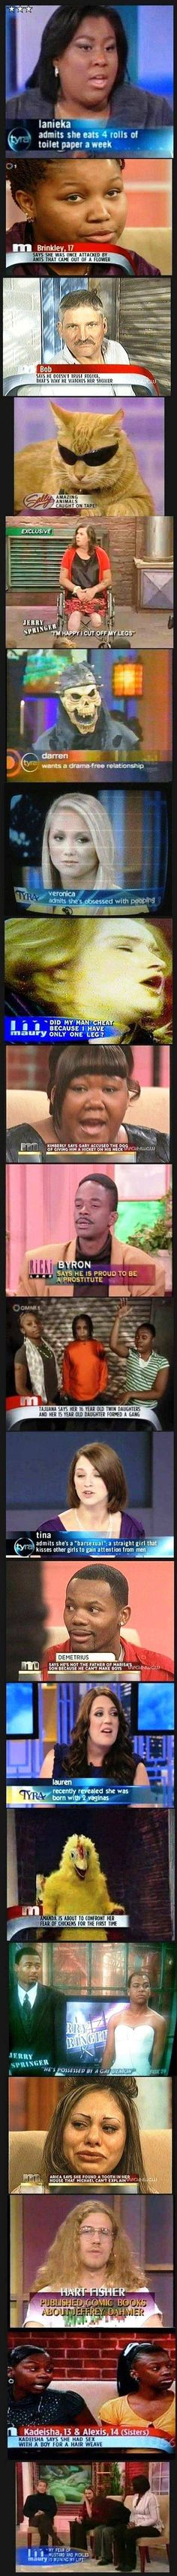 The Best Of Daytime Television